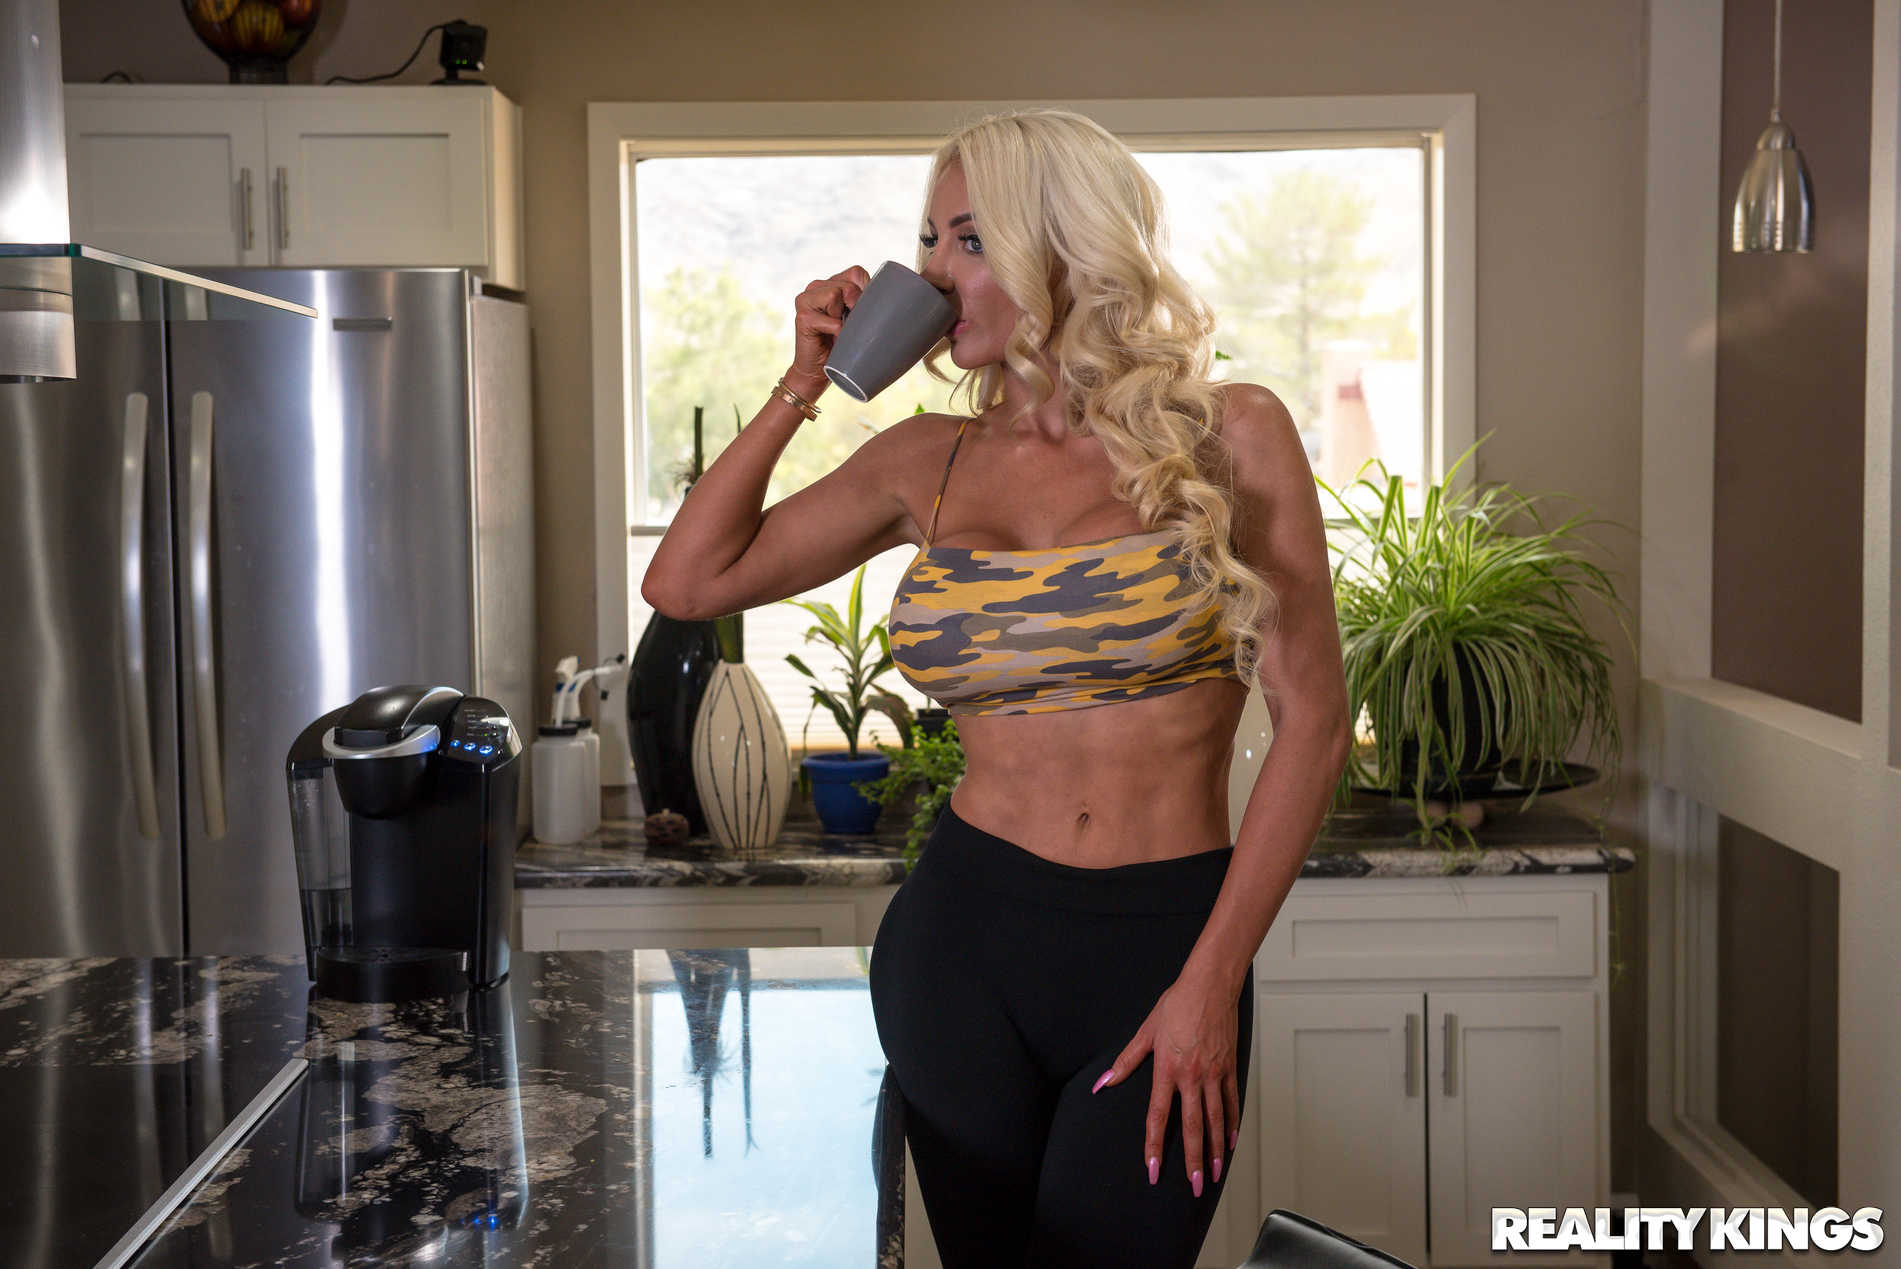 Reality Kings 'Just Gotta Rest My Breasts' starring Nicolette Shea (Photo 81)